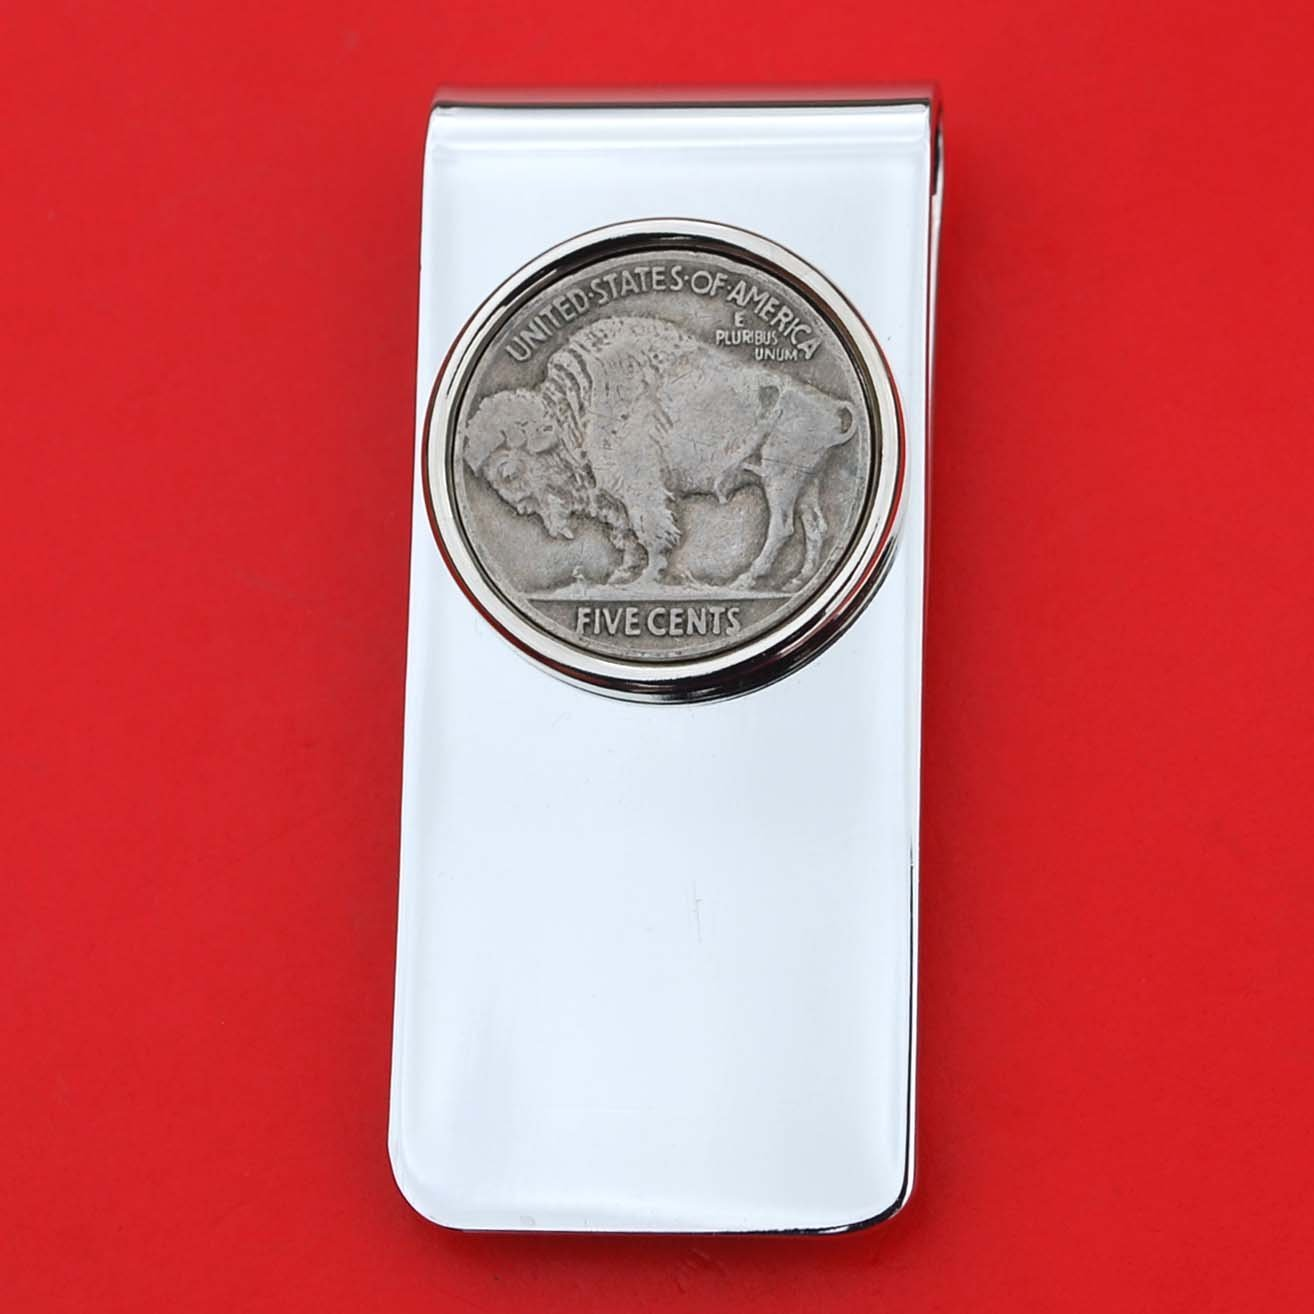 US 1913 ~ 1938 Indian Head Buffalo Nickel 5 Cent Coin Solid Brass Silver Plated Money Clip New - High Quality